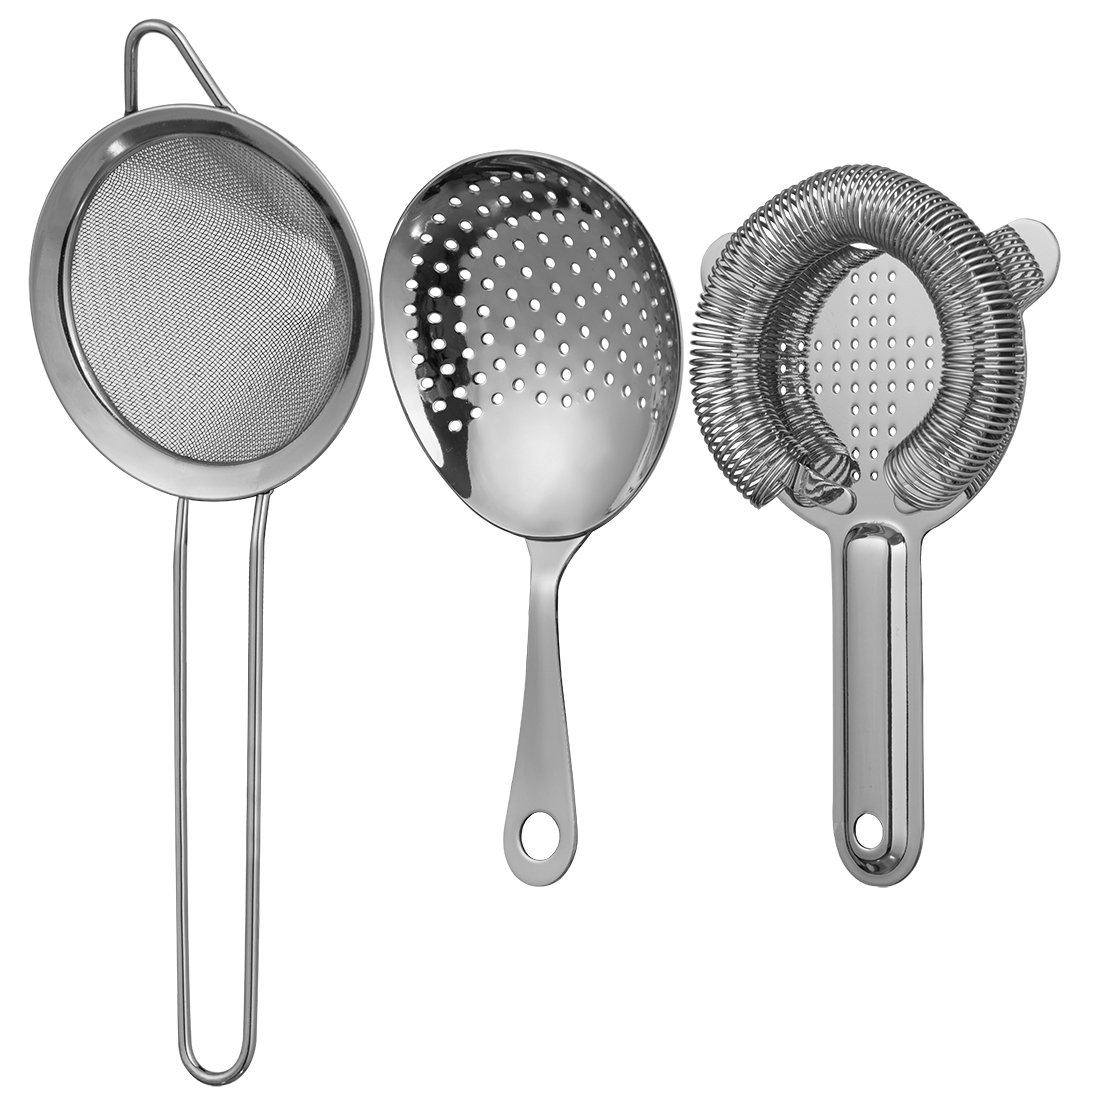 Cocktail Strainer Set for Professional Bartenders and Mixologists – Stainless Steel Hawthorne Strainer, Julep Strainer and Fine Mesh Conical Strainer